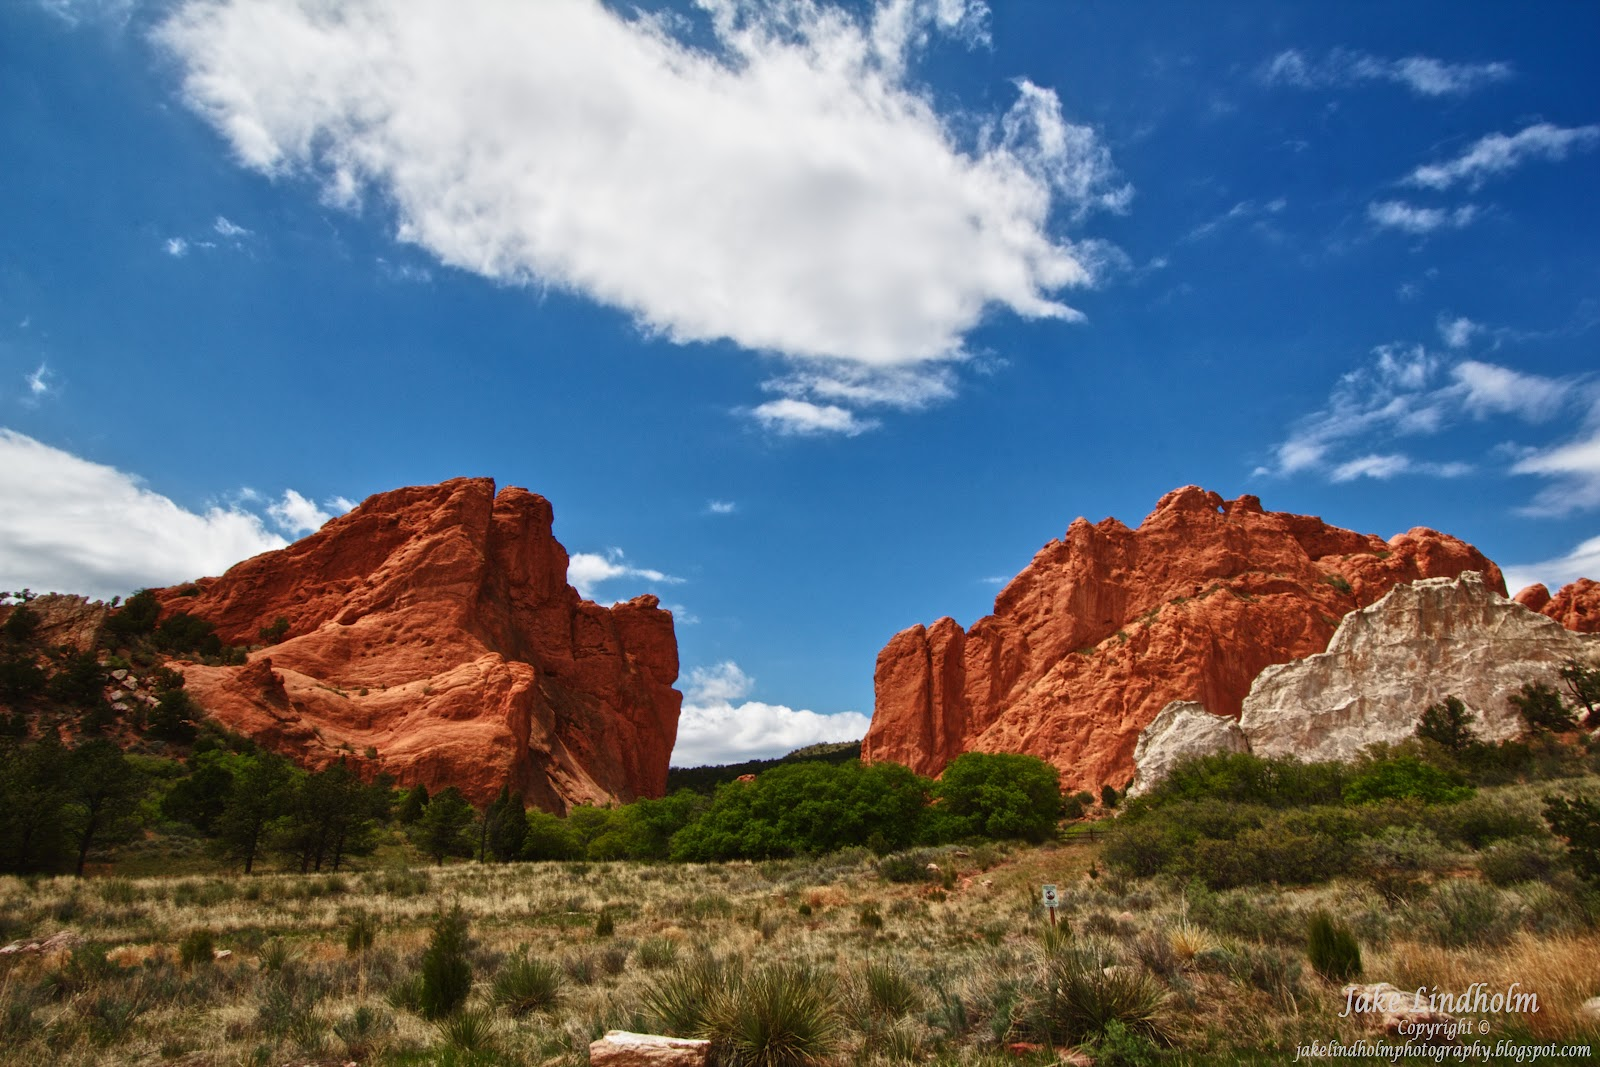 Jake lindholm photography may 2012 - Garden of the gods colorado springs co ...